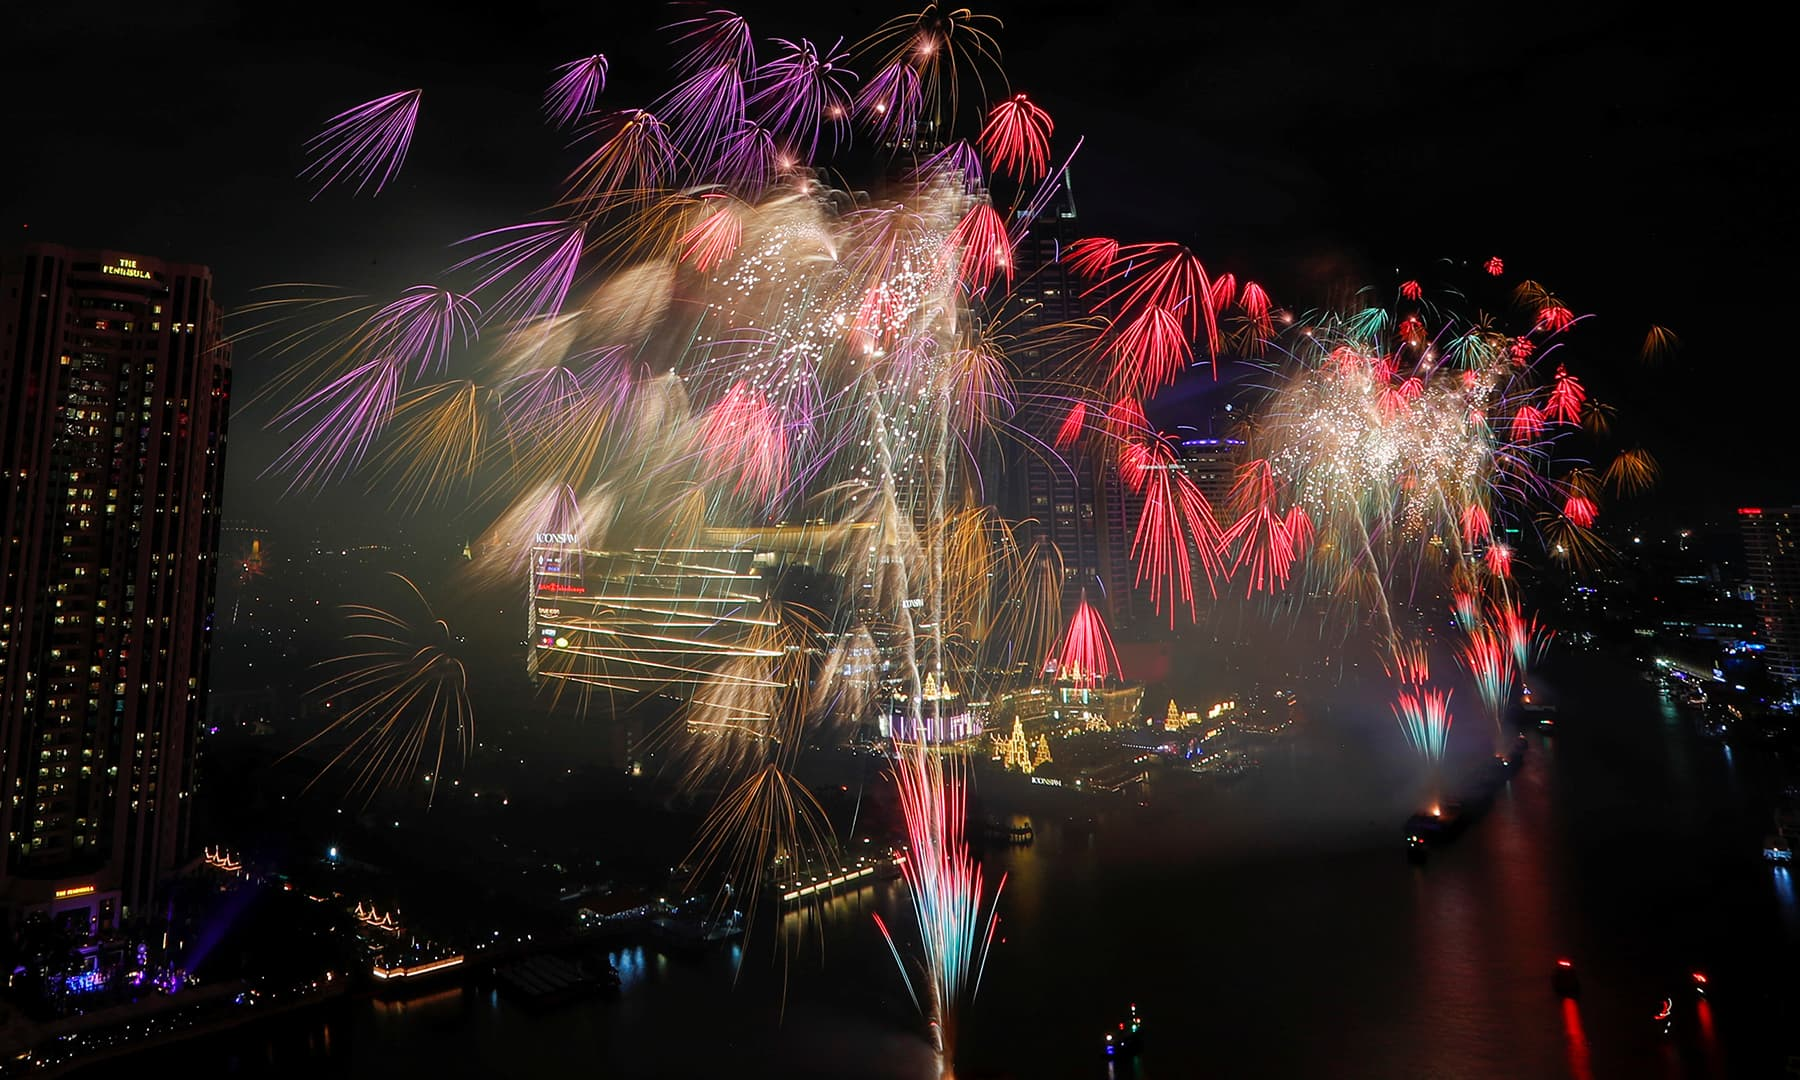 Fireworks explode over Chao Phraya River during the New Year's celebrations in Bangkok, Thailand, January 1, 2020. — Reuters